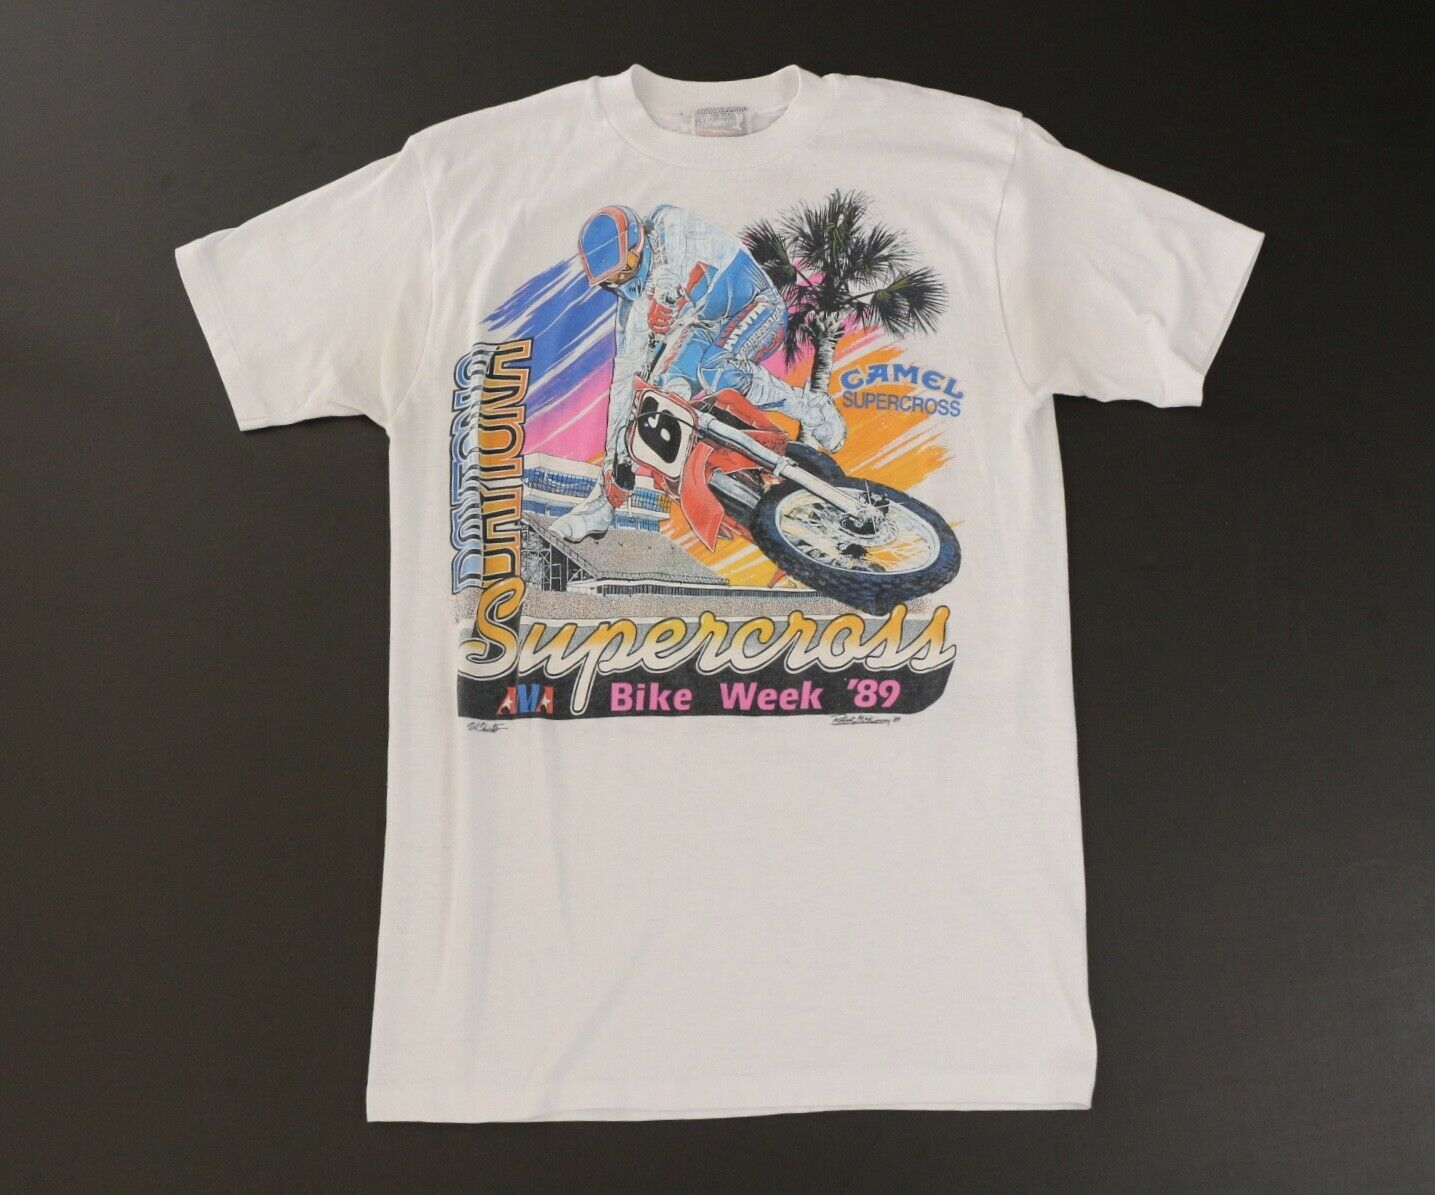 Vintage 89 Motocross Bike Week Camel Tee T Shirt Large fits S Small 2 Sided